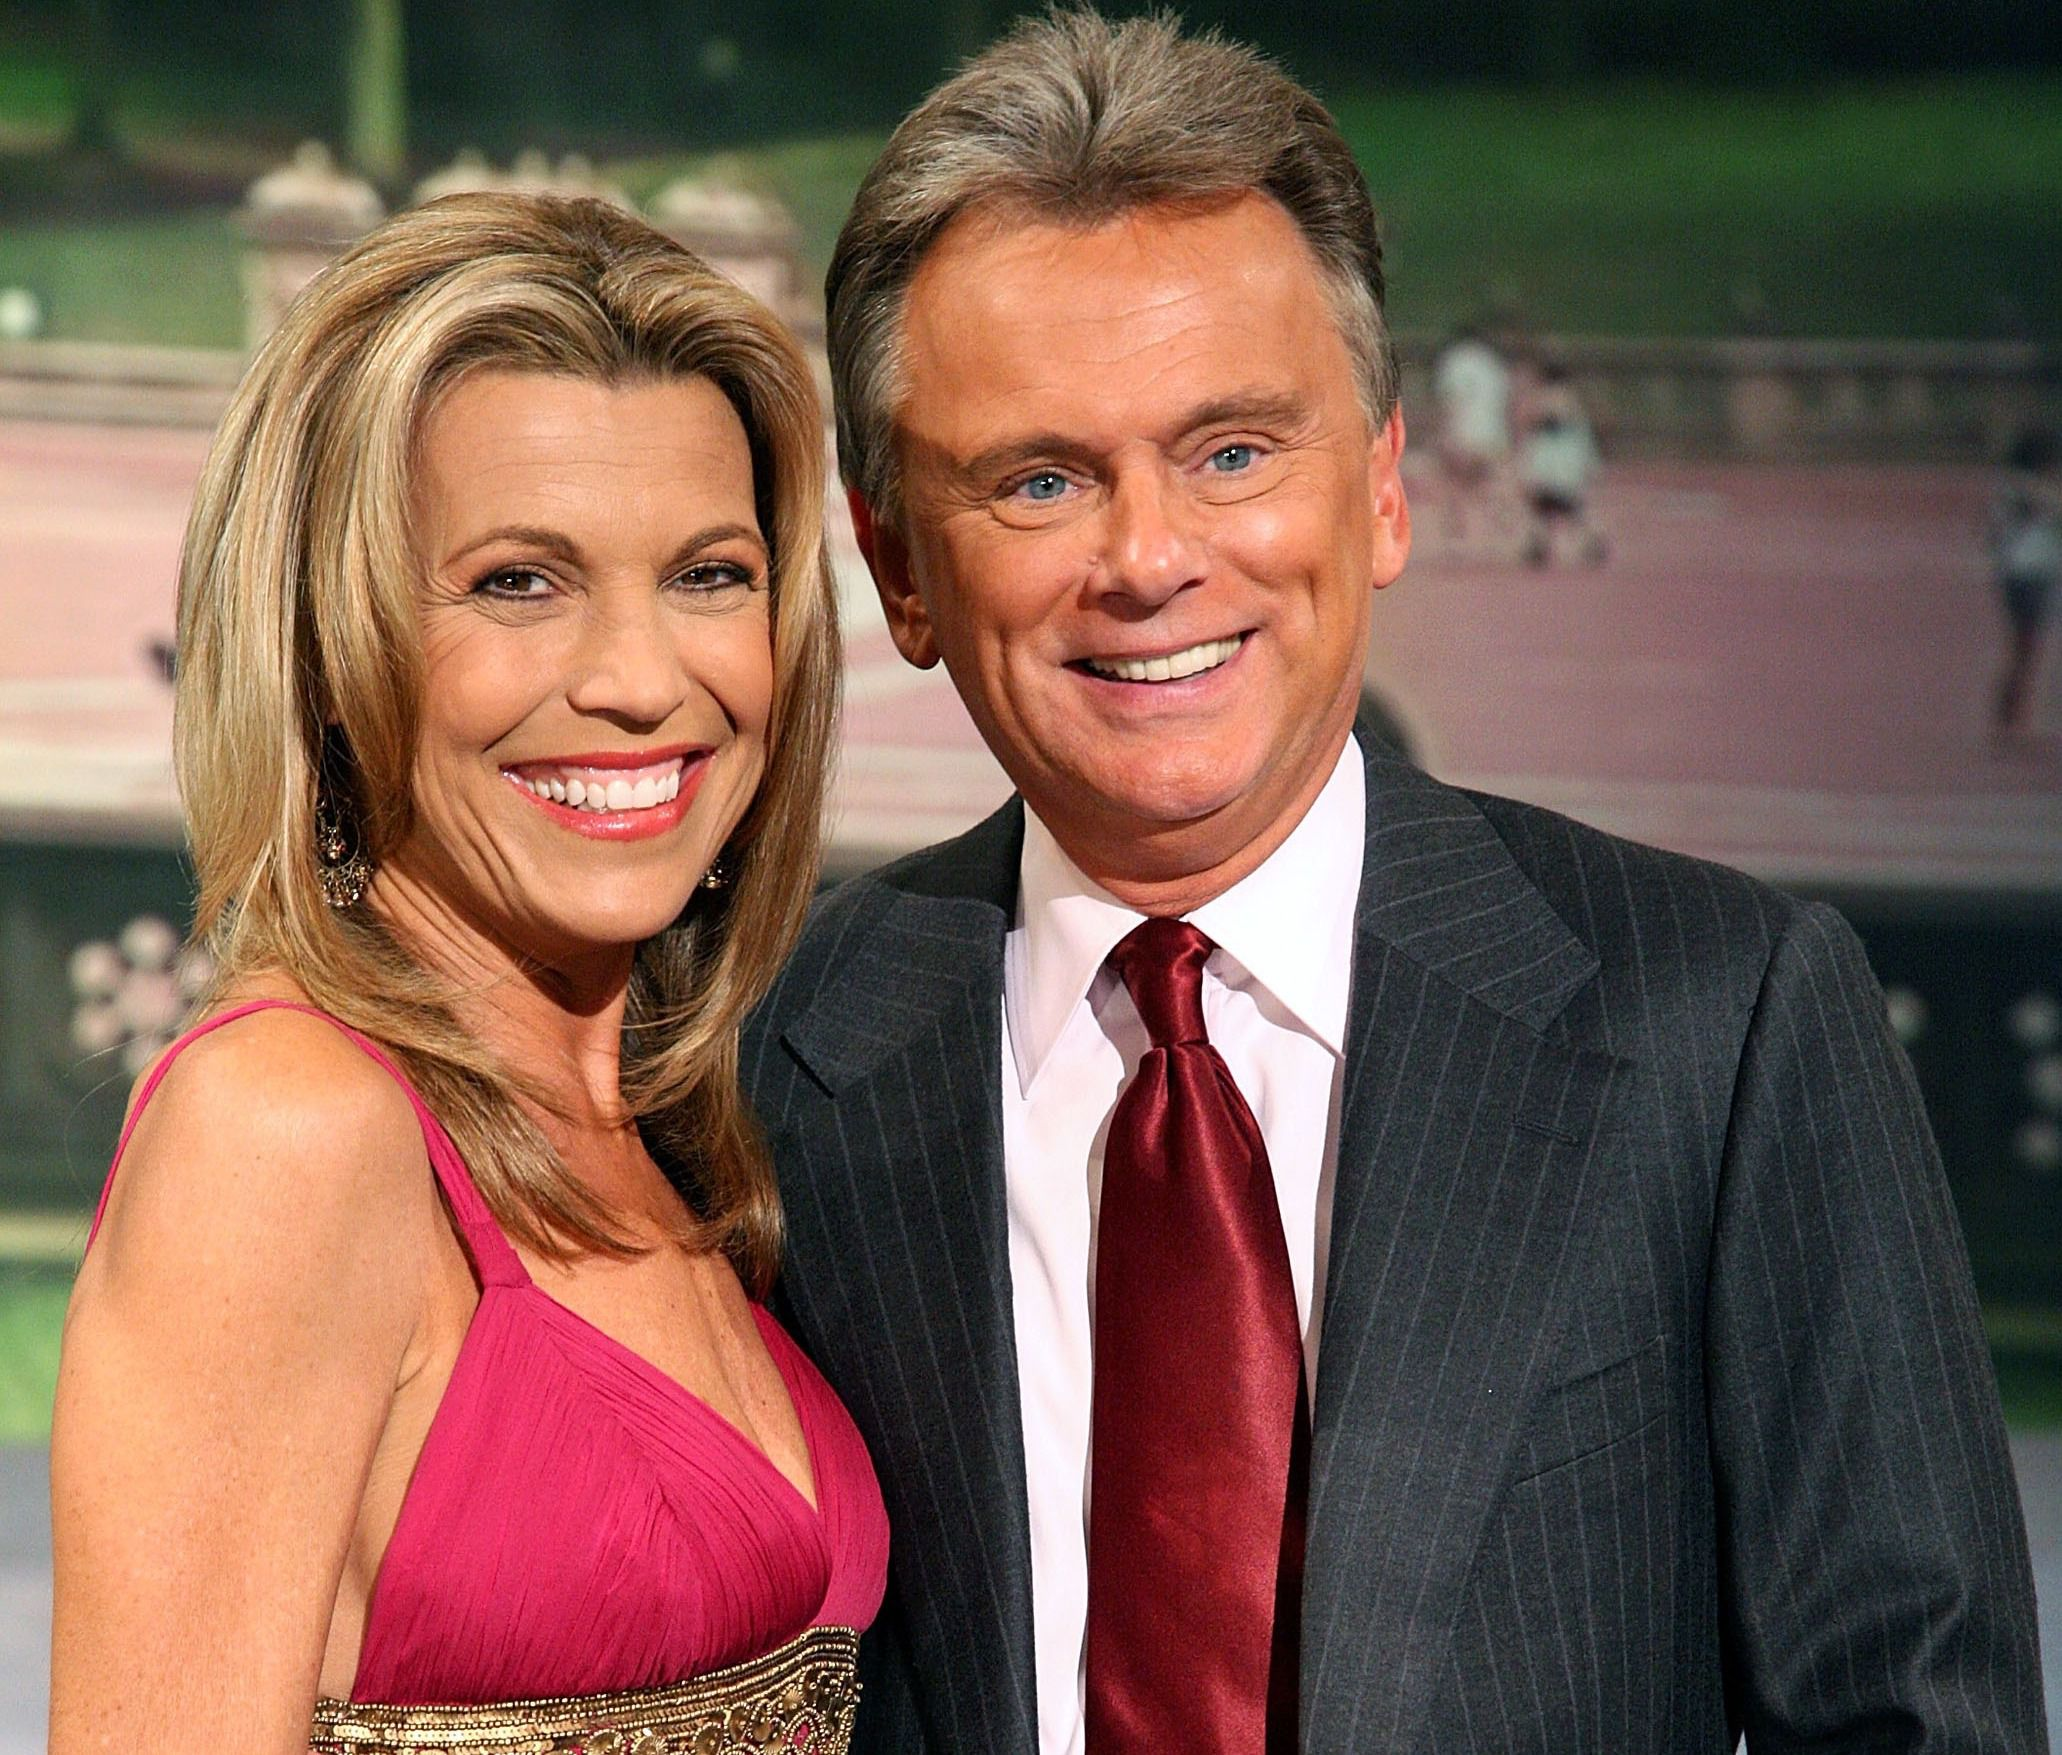 Pa Woman To Appear On Wheel Of Fortune This Week Pennlive Com